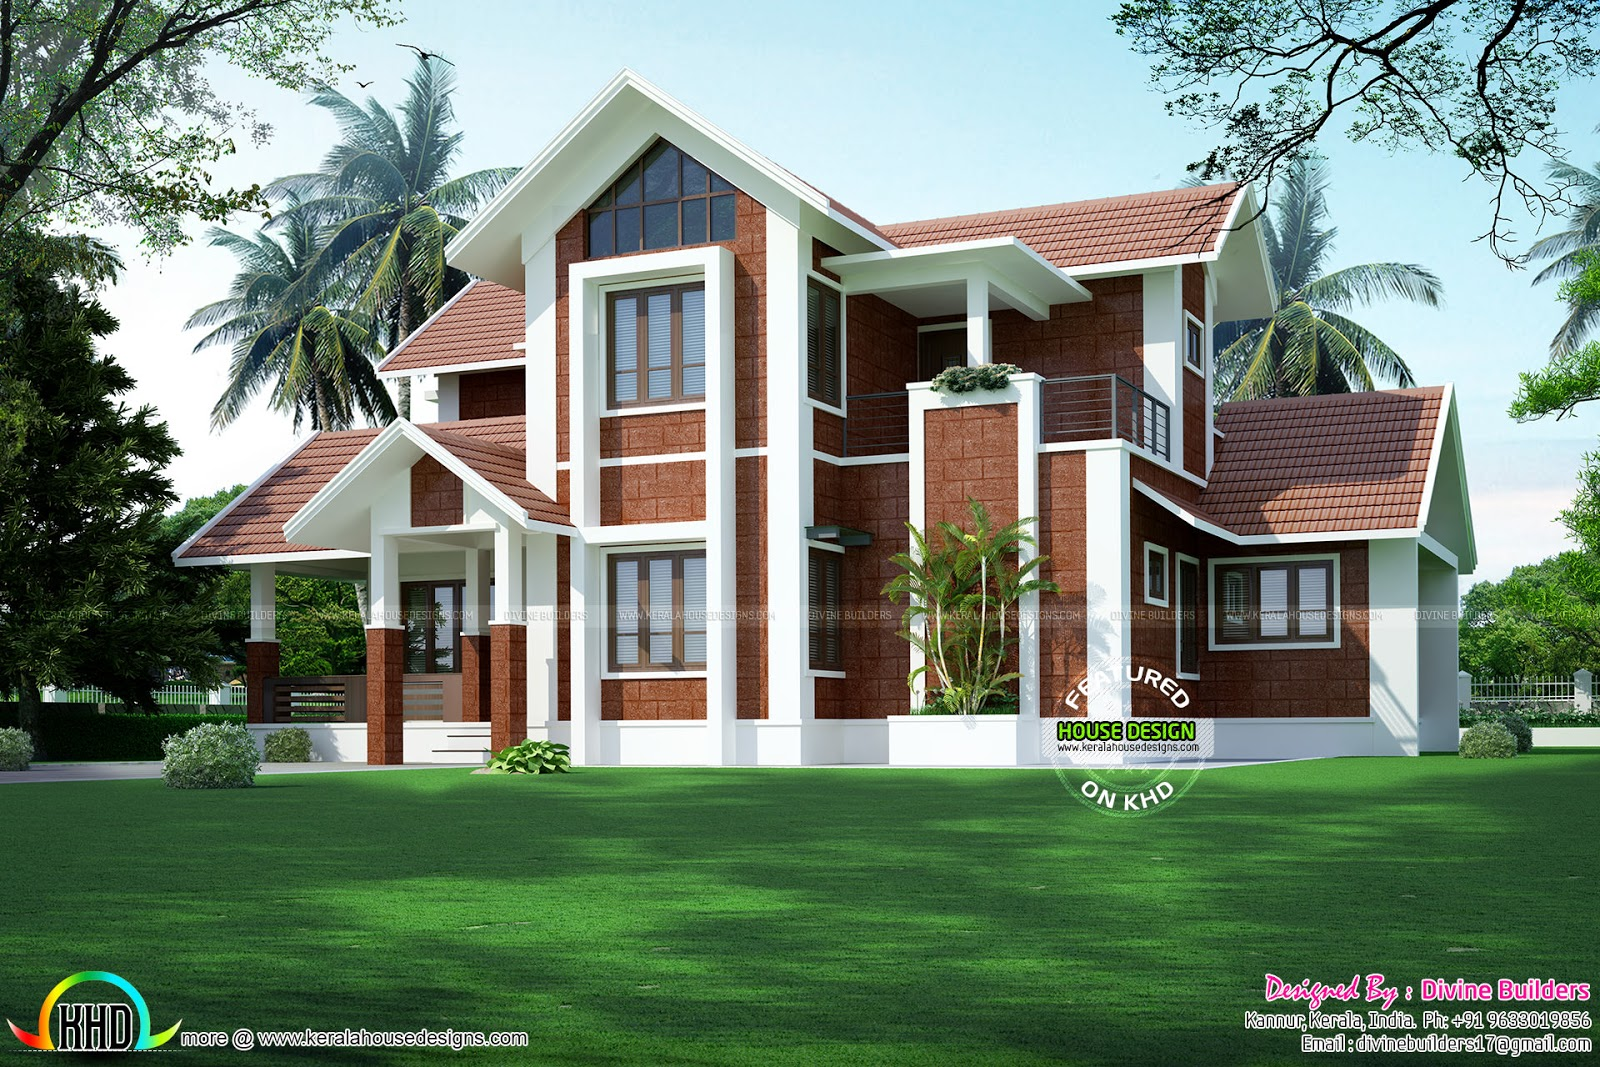 Sloping roof house by divine builders kerala home design for Devine home designs